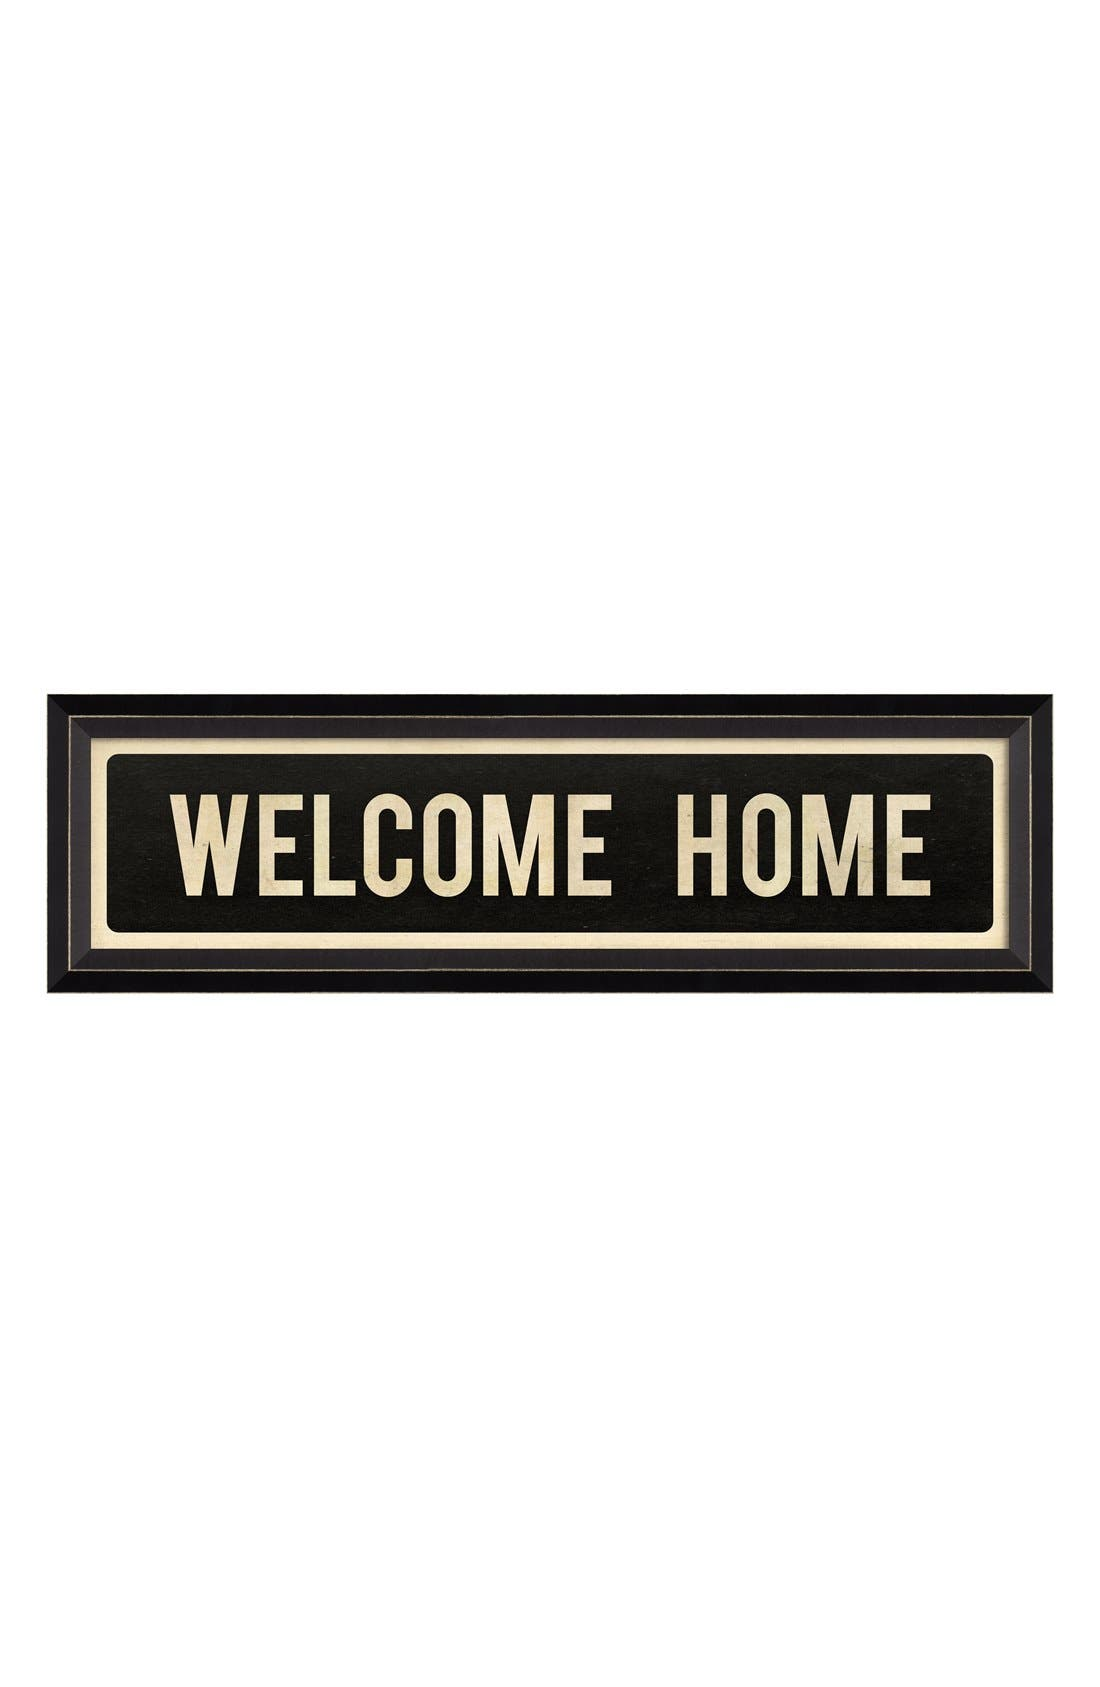 Alternate Image 1 Selected - Spicher and Company 'Welcome Home' Vintage Look Sign Artwork